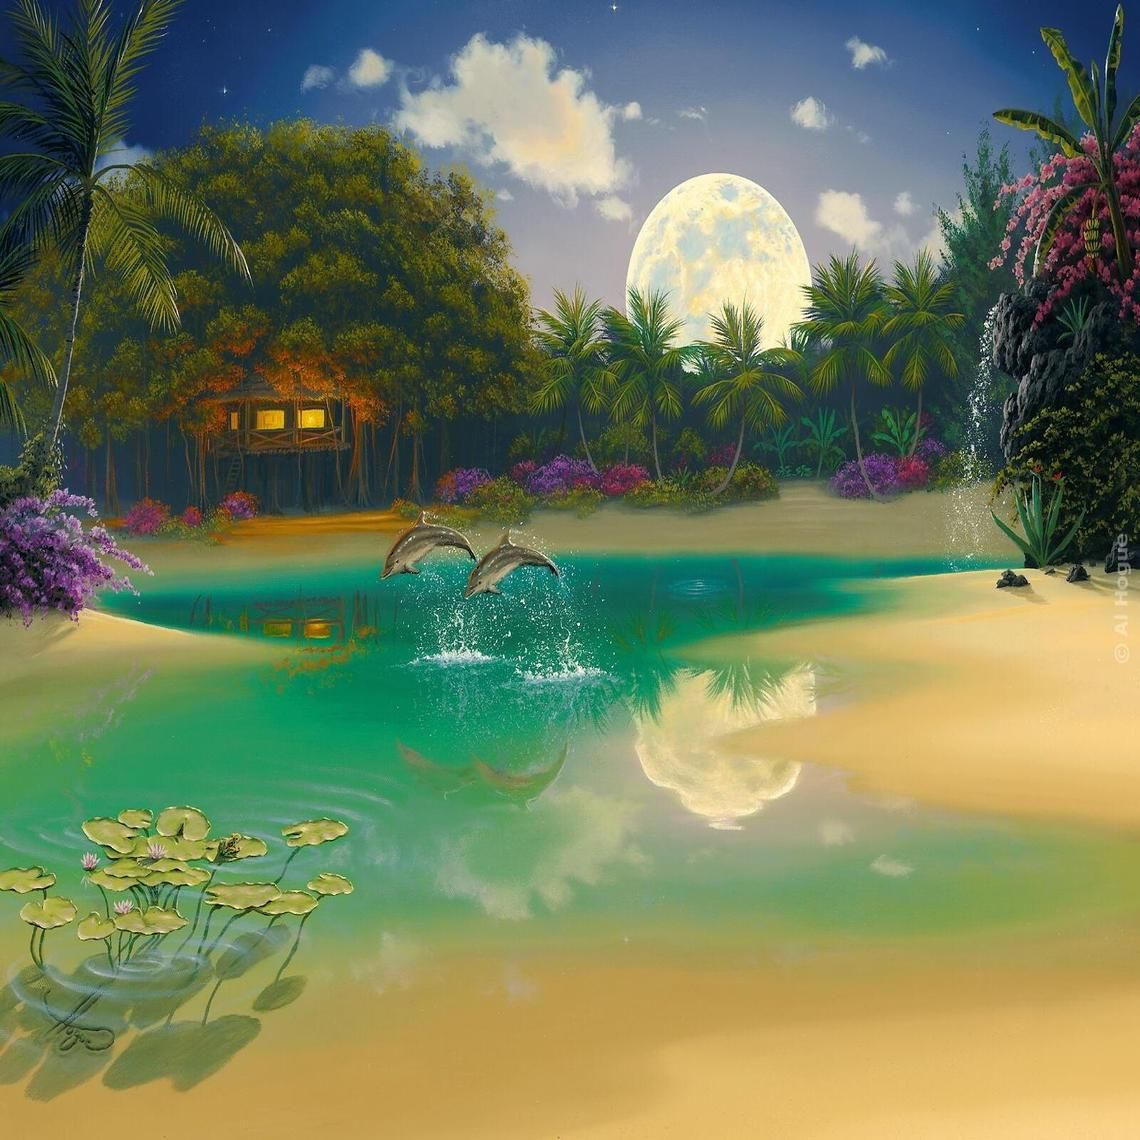 Dolphin Home Moonlight Pinterest Circuit Board Parts Group Picture Image By Tag Keywordpictures